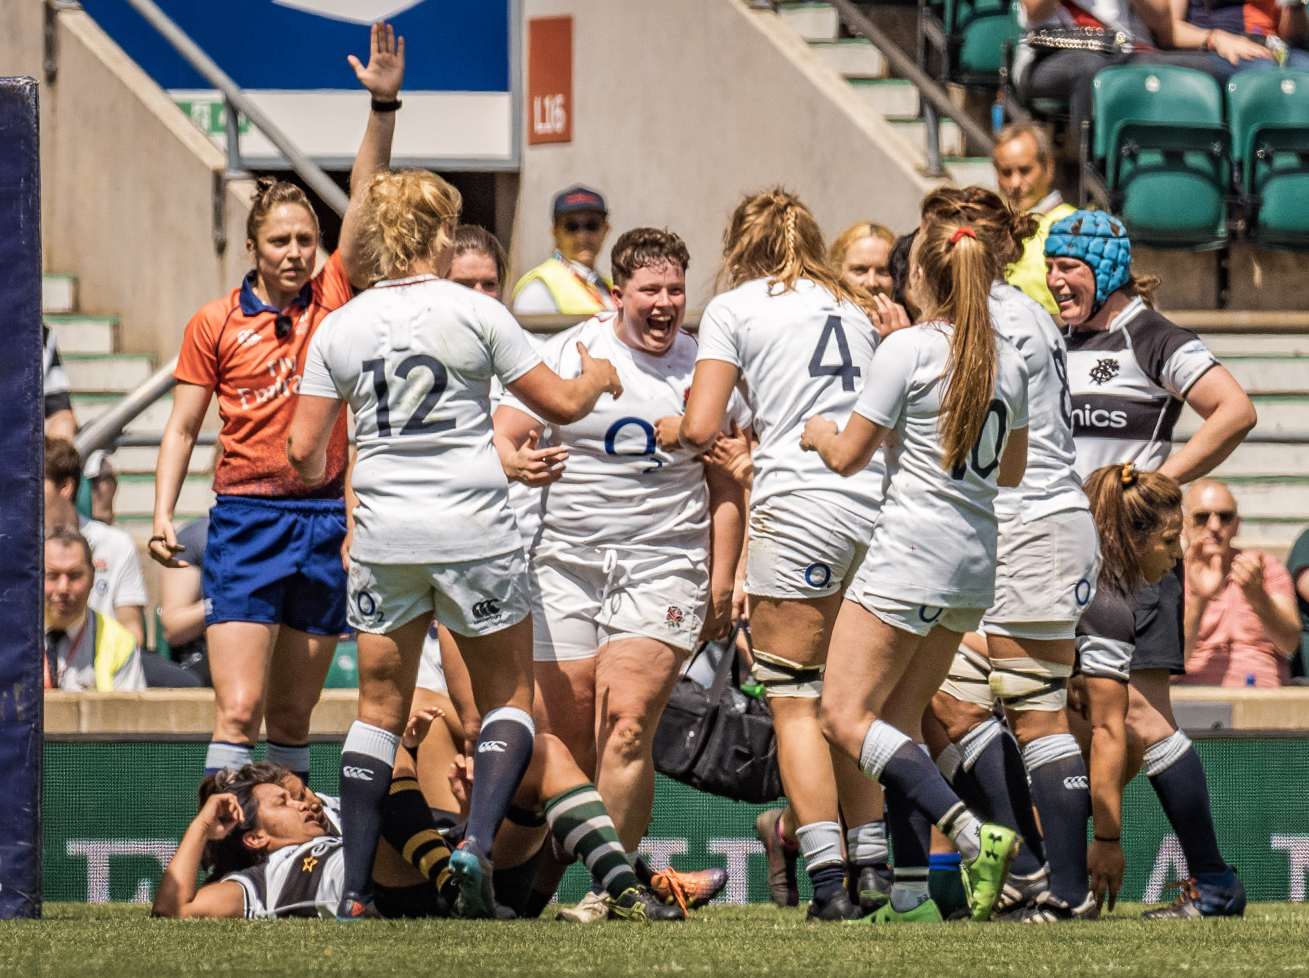 Hannah Botterman celebrates her try while I look on from the other end of the pitch